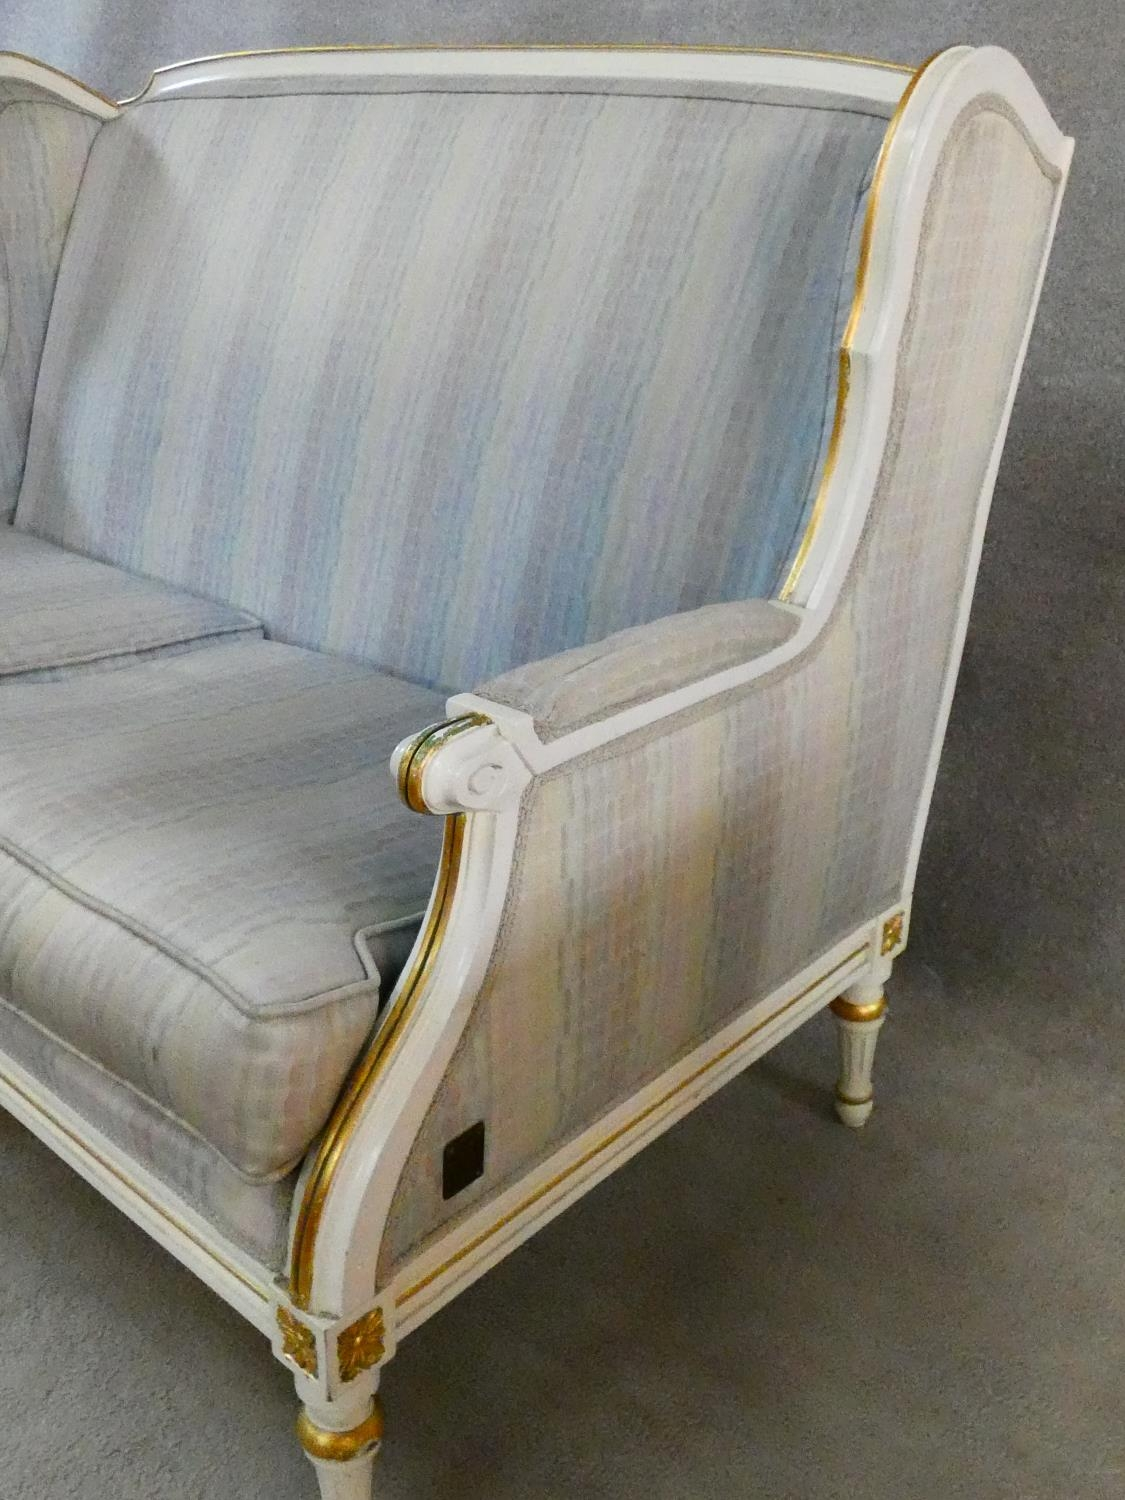 A Louis XVI style gilt and with painted two seater sofa in pale damask upholstery. H.93 L.136 D.77cm - Image 6 of 20